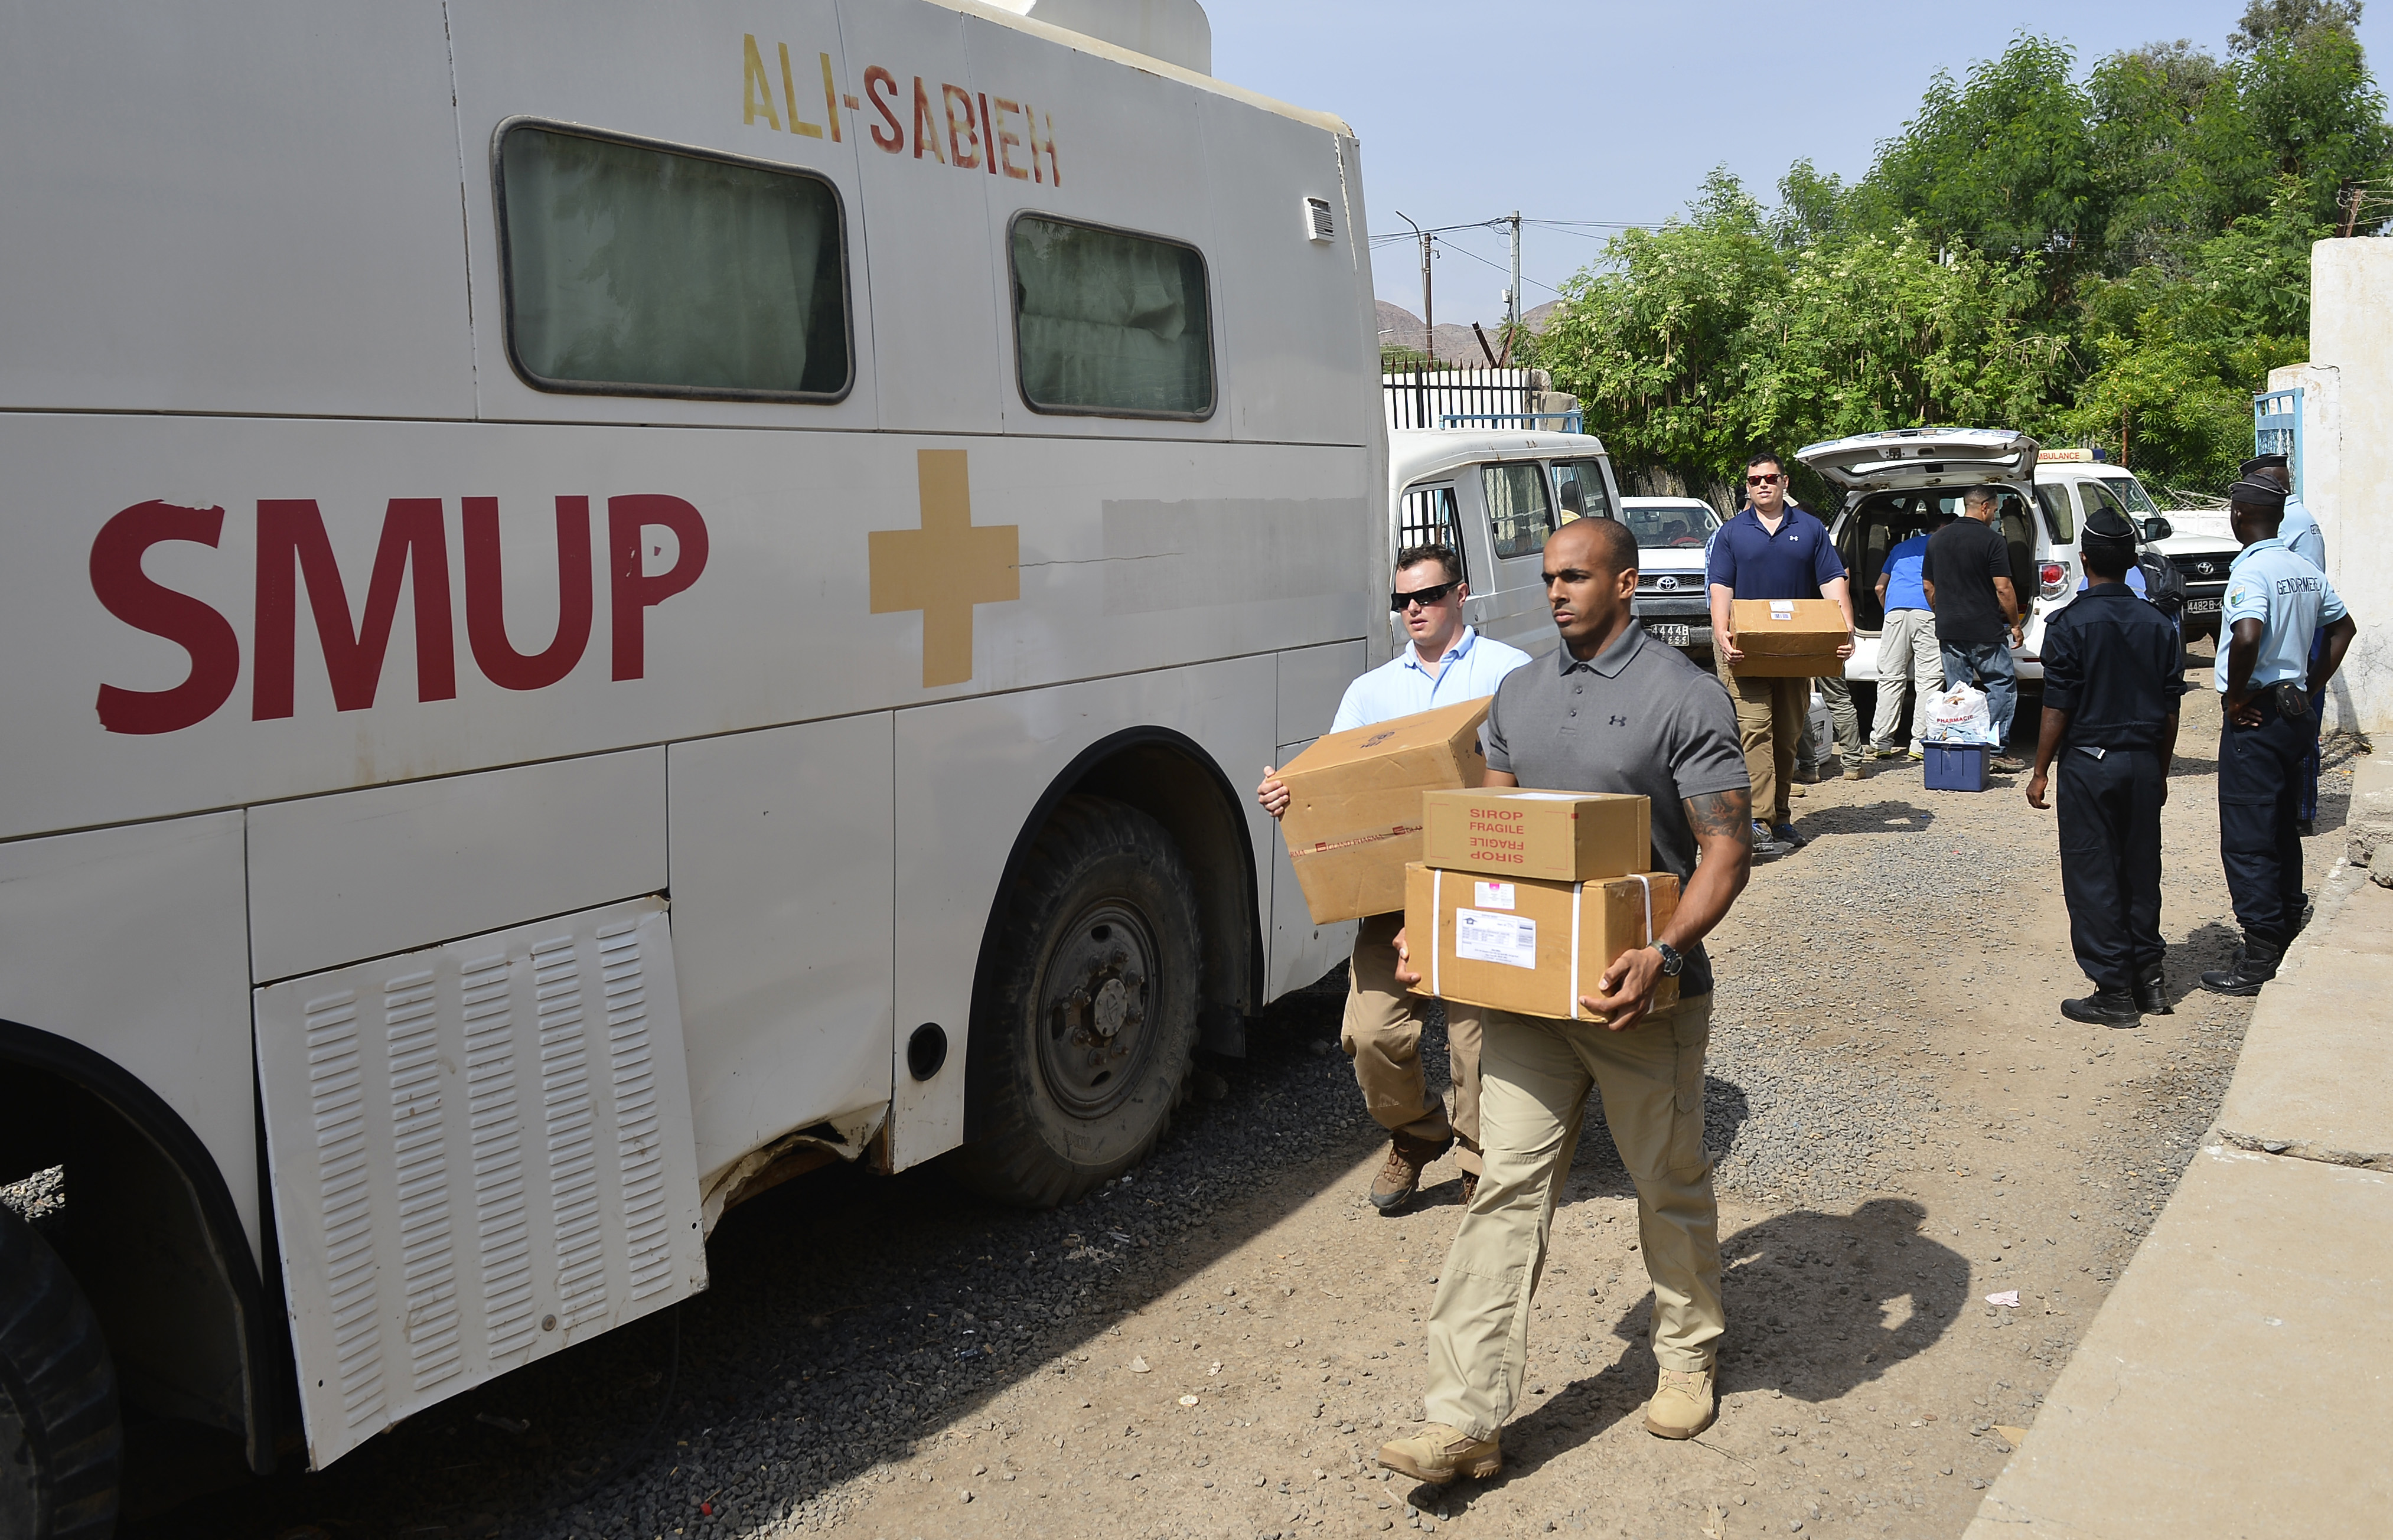 Members of the U.S. Army's 404th Civil Affairs Battalion, assigned to Combined Joint Task Force-Horn of Africa, unload medical supplies at Ali Sabieh Medical Clinic in Djibouti, Africa, Sept. 12, 2015. The 404th CA BN partnered with Djibouti's Ministry of Health to host a Medical Civic Action Program outreach event. They provided an obstetrician-gynecologist, pediatrician, dentist and ophthalmologist for the rural people. (U.S. Air Force photo by Senior Airman Nesha Humes)